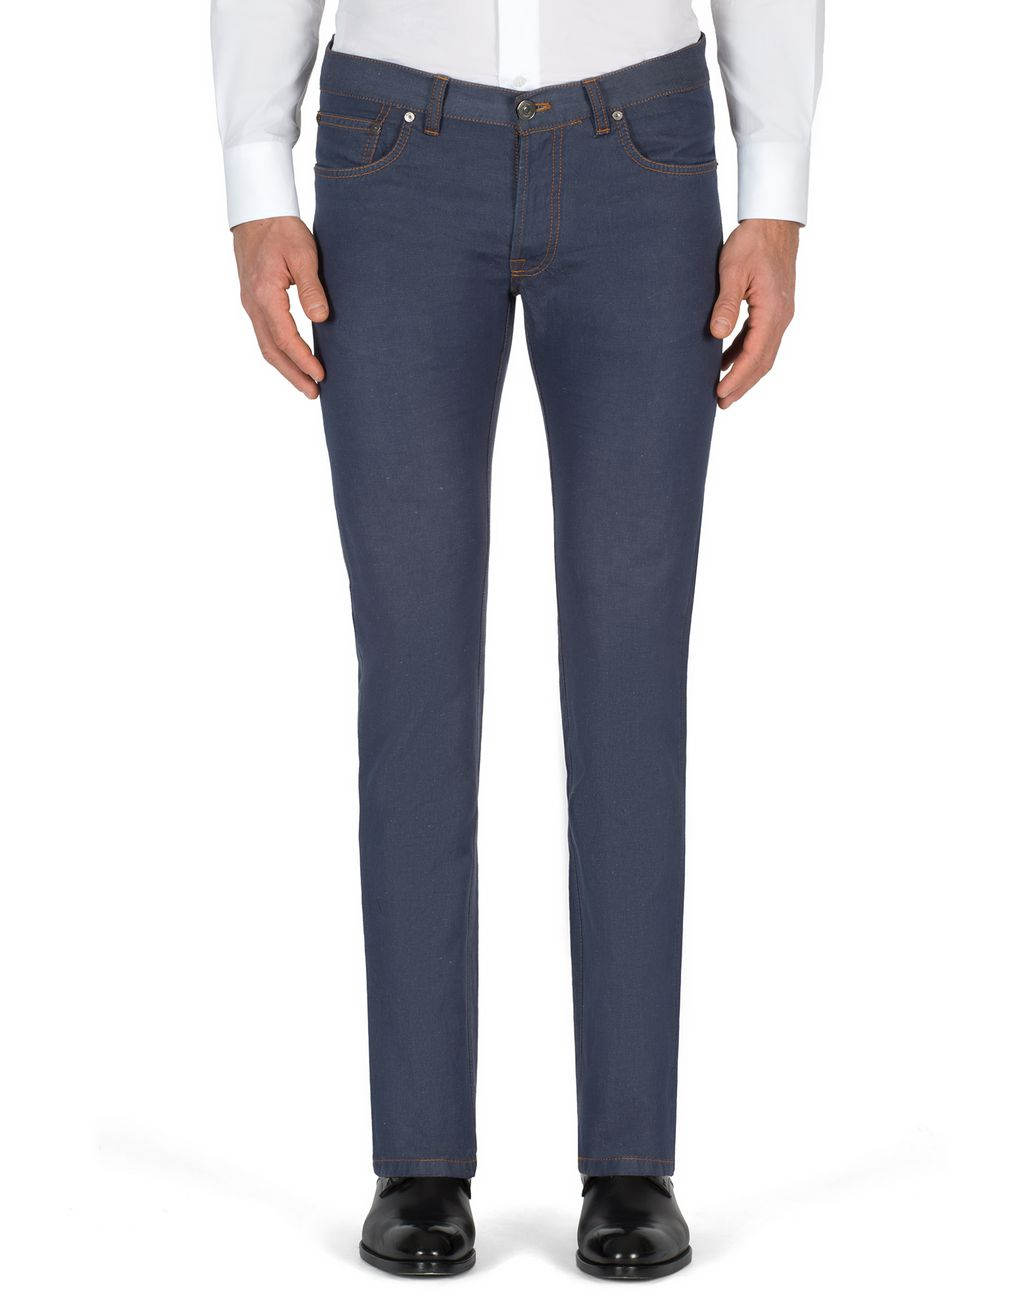 BRIONI Bluette Slim-Fit Cotton and Linen Aneto Jeans  Denim Man r